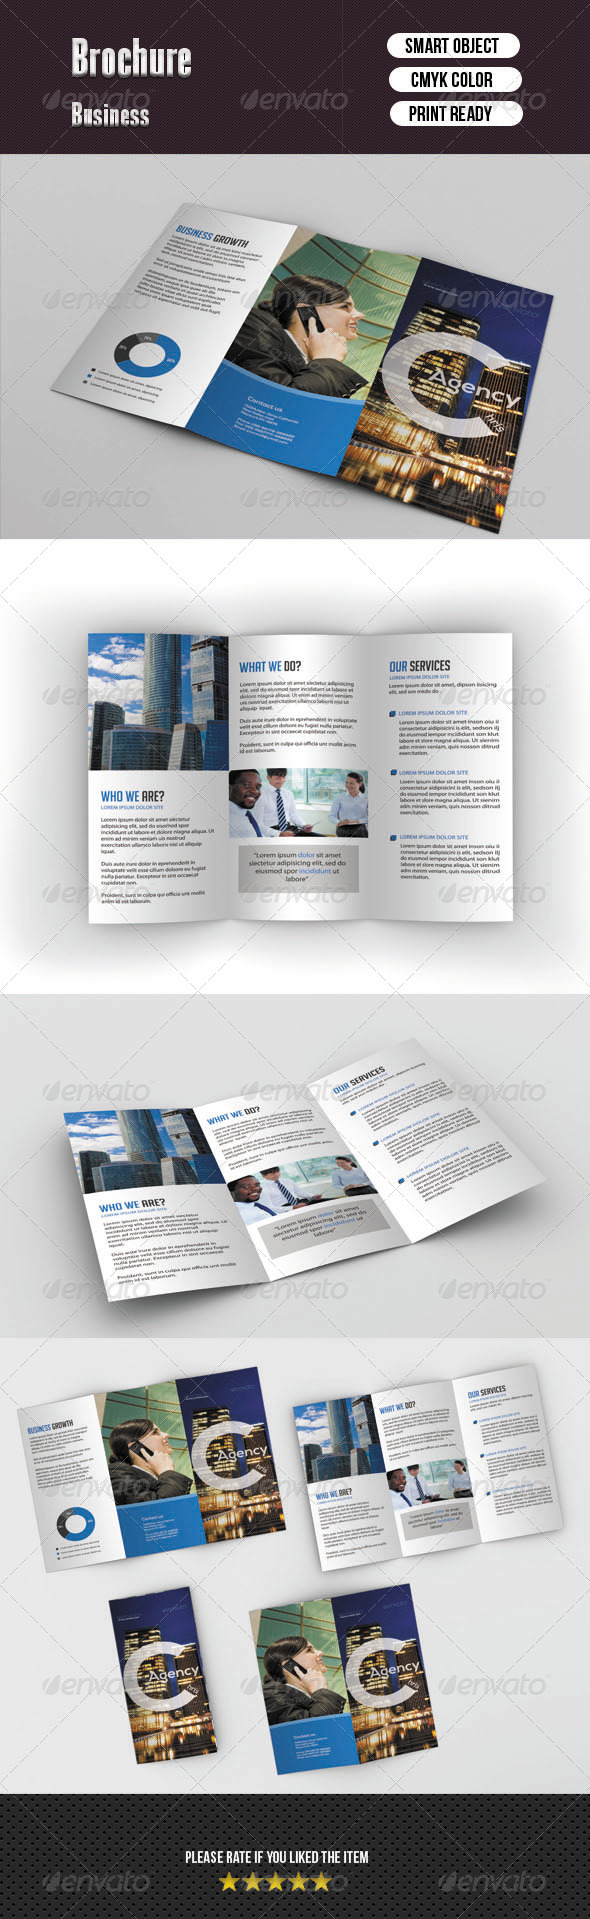 GraphicRiver Tifold Brochure-Business 6155632